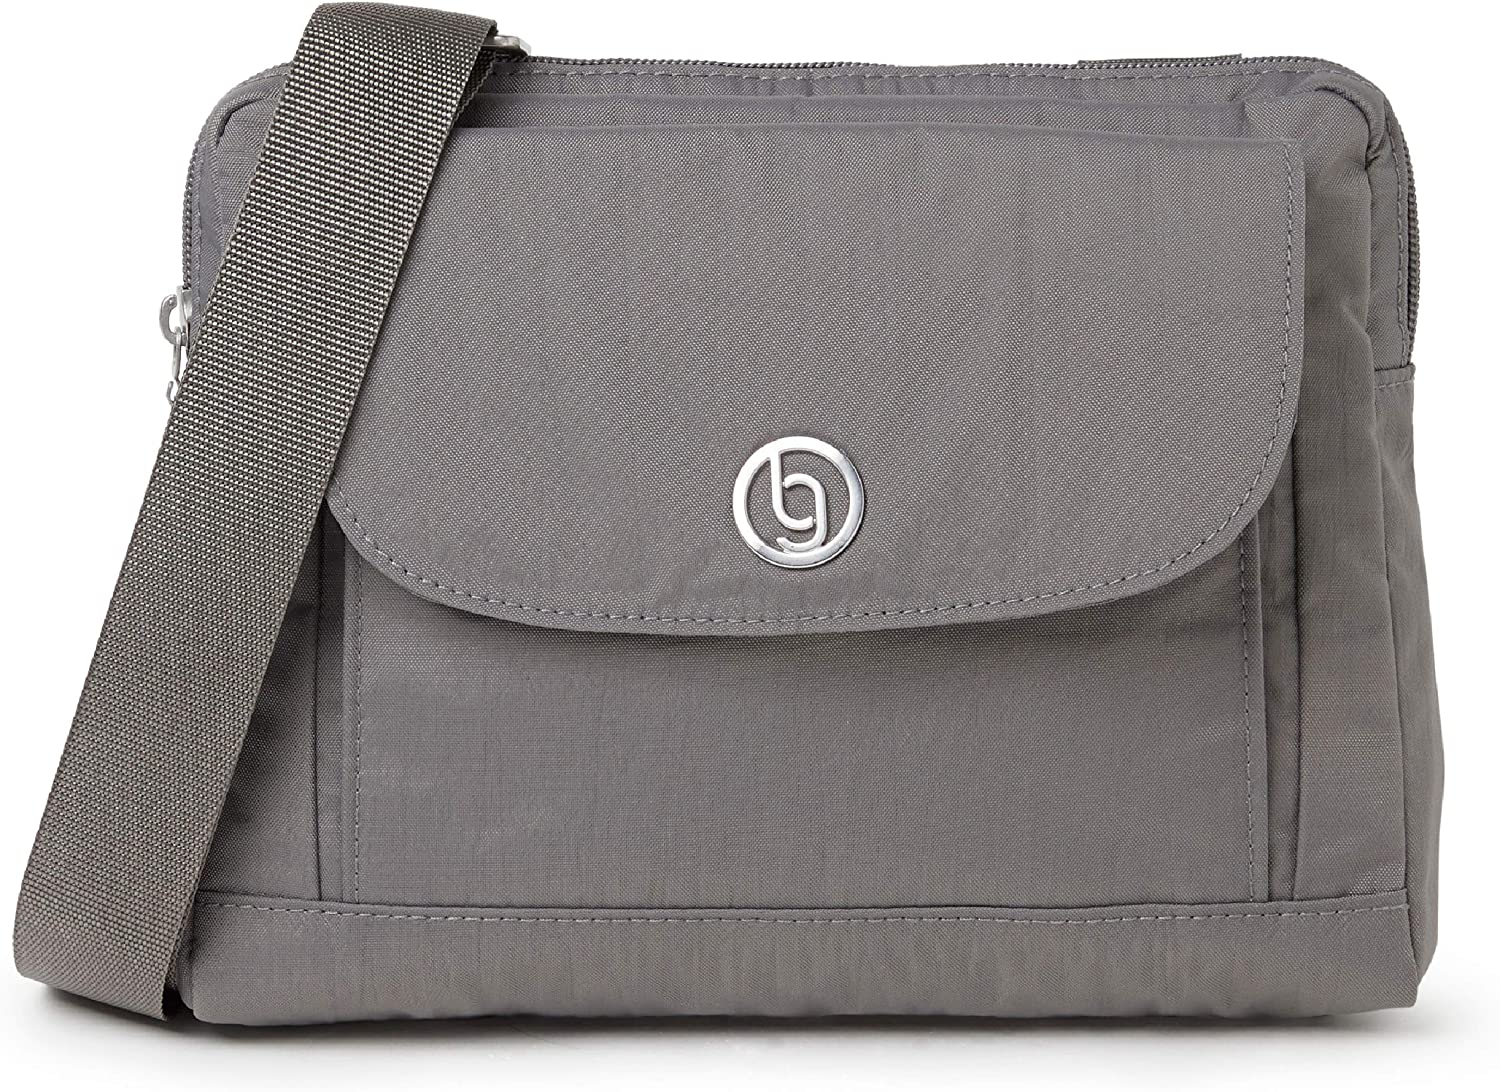 Baggallini Chicago Crossbody Bag – Lightweight, Water-Resistant, Adjustable Strap and RFID